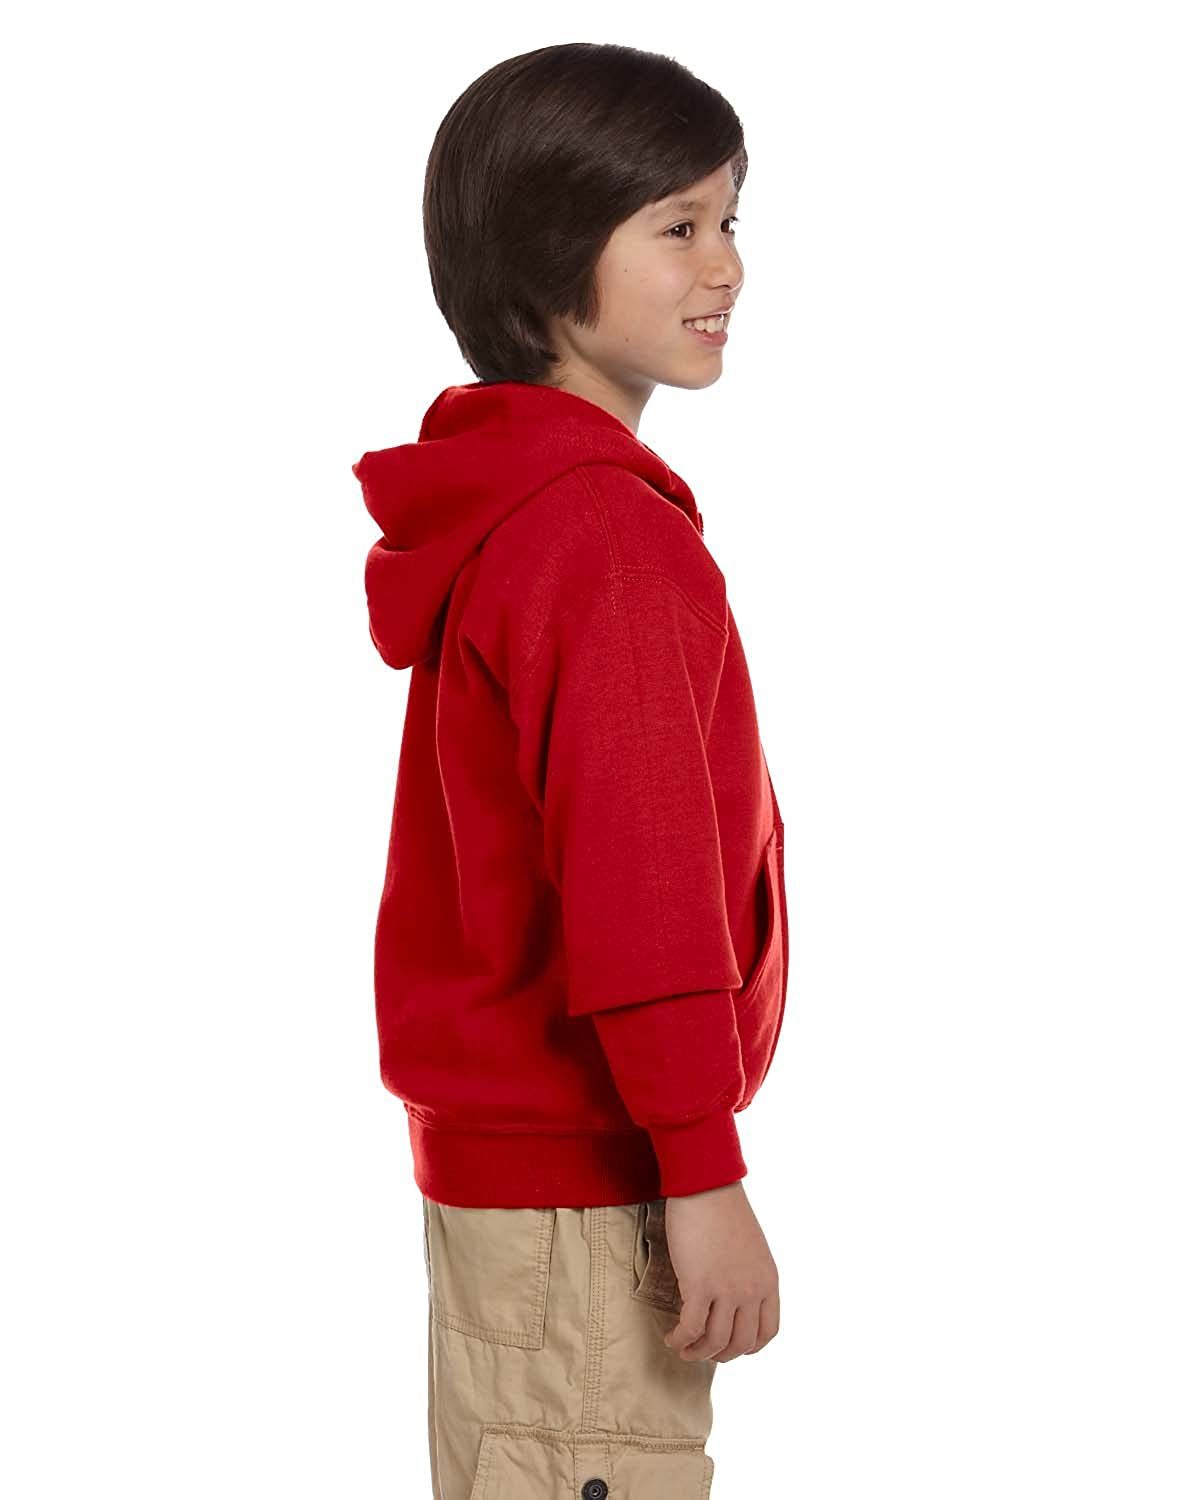 Gildan Big Boys' Heavy Blend Ribbed Full-Zip Hooded Sweatshirt 562